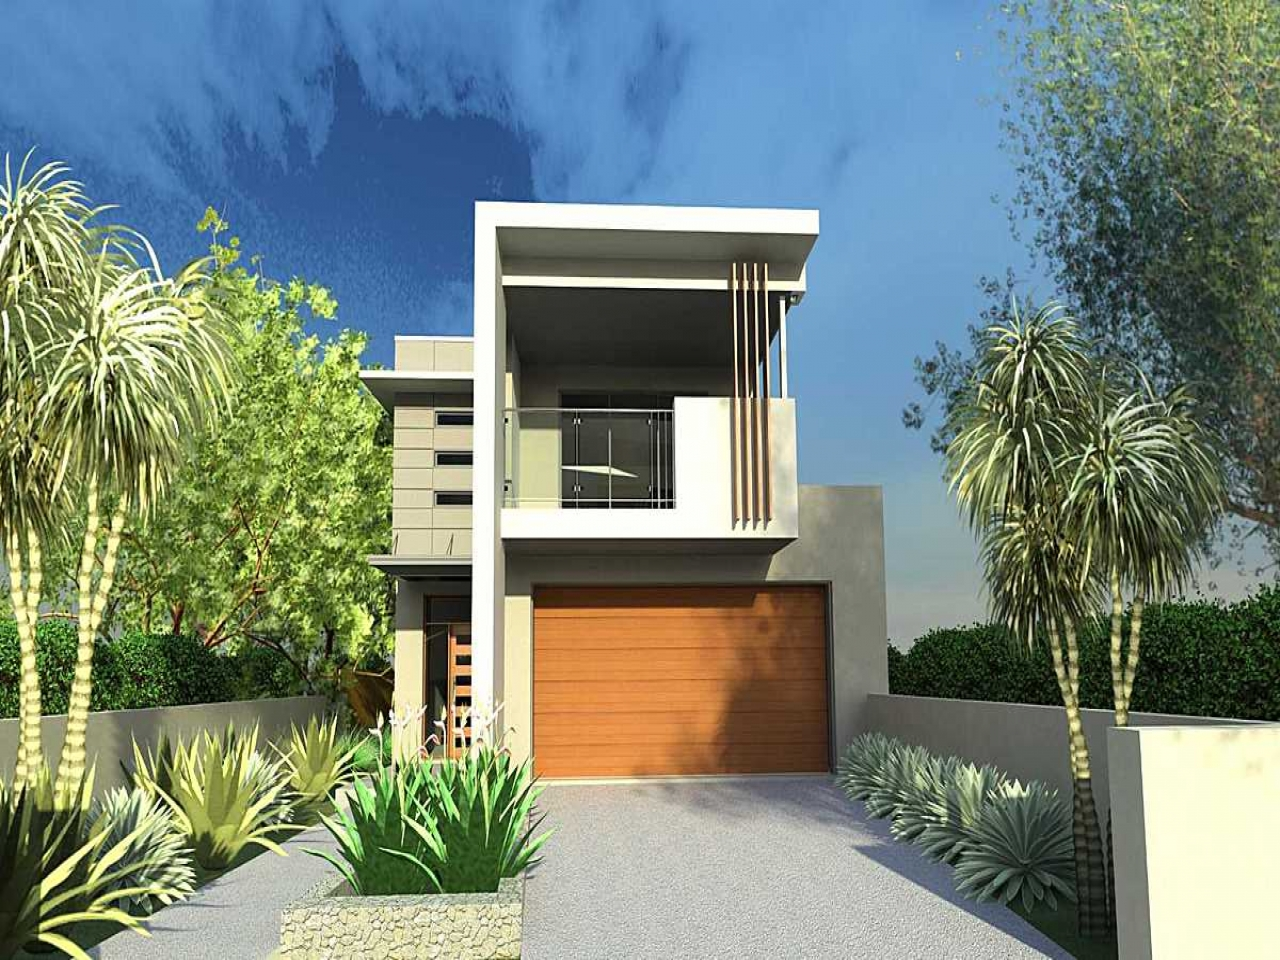 Narrow lot house plans with front garage lot narrow plan for House design plans for small lots